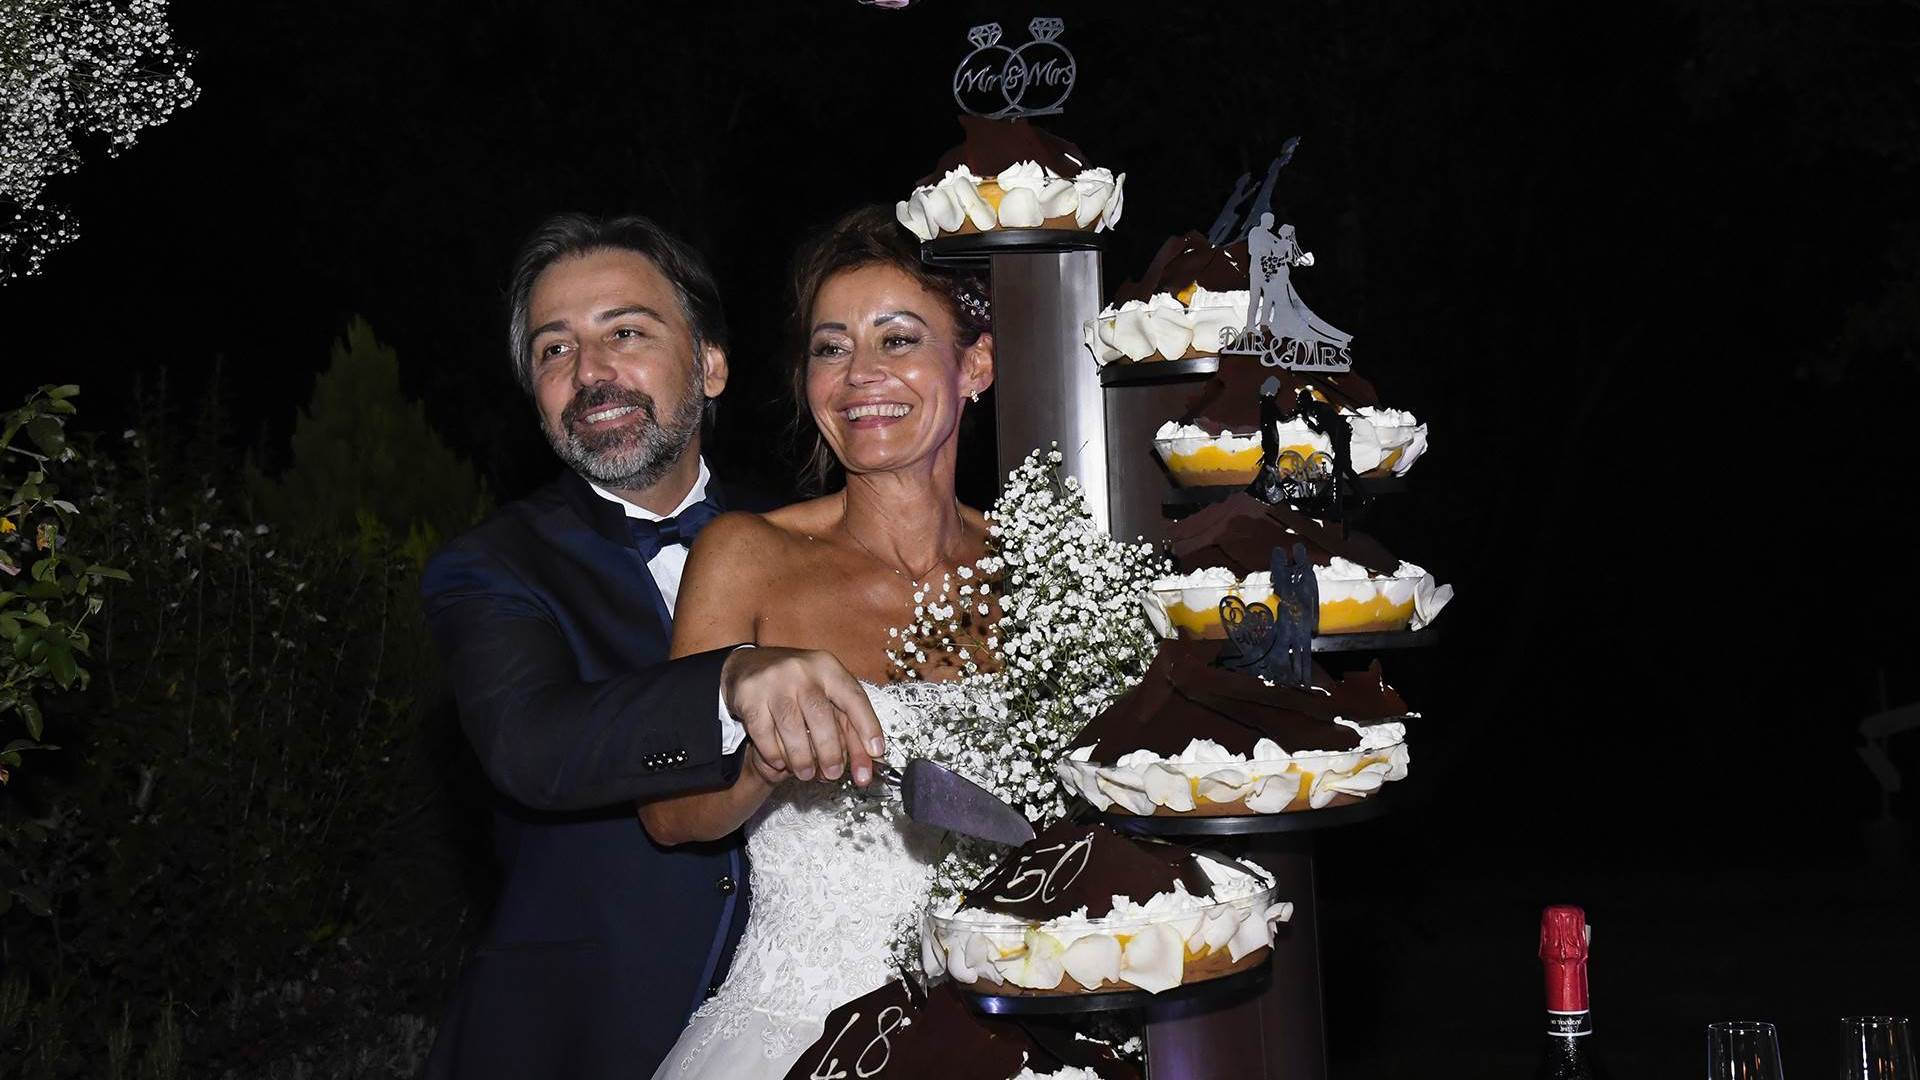 Stefano & Serena wedding26 agosto 2020